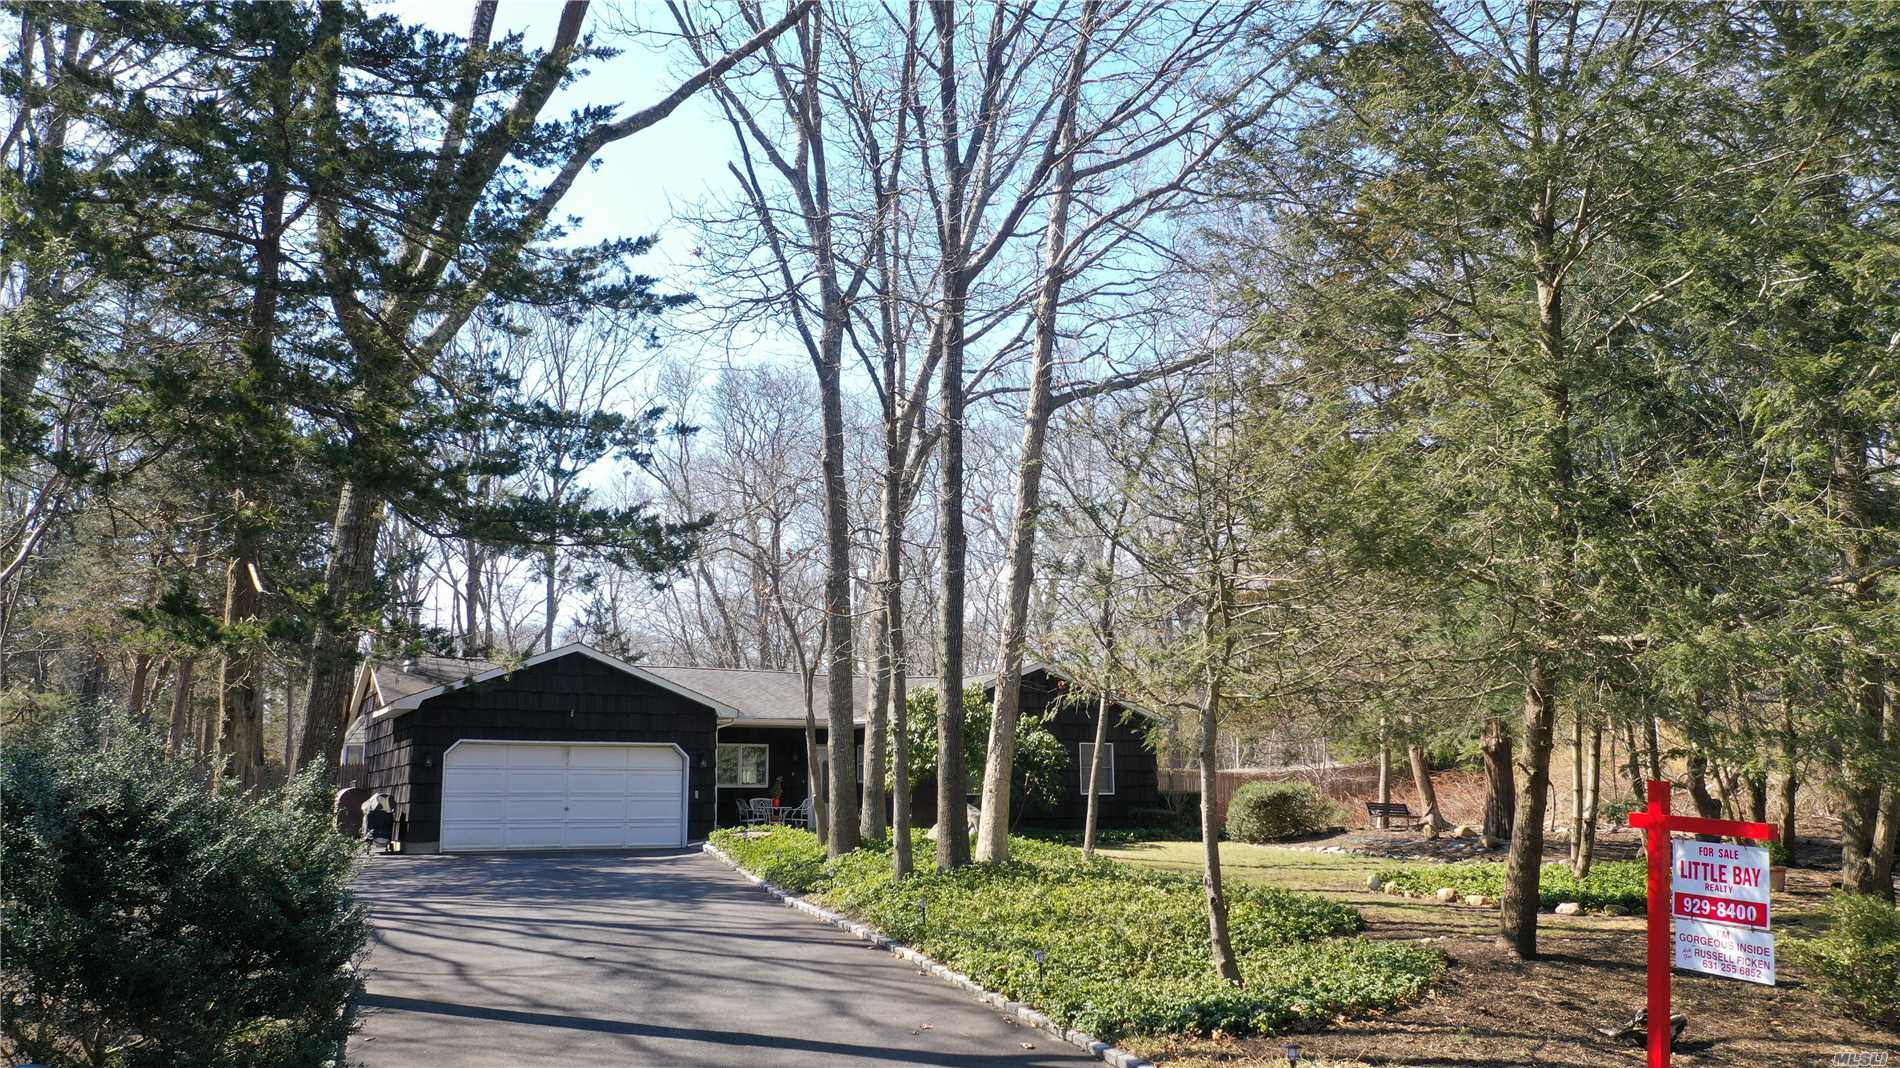 Terriffic opportunity to live in North Shoreham Shoreham Acres ! Very private setting quiet & peaceful. This beautifully updated and move-in ready U shaped ranch offers 3 Br, 2 full baths, open kitchen living area layout with a large den/play room, hardwood floors and tile make cleaning easier. Large Fenced private yard with plenty of room for a pool & close to beaches ! Perfect setting for family/retirement/2nd home - Hurry it will not last !!!